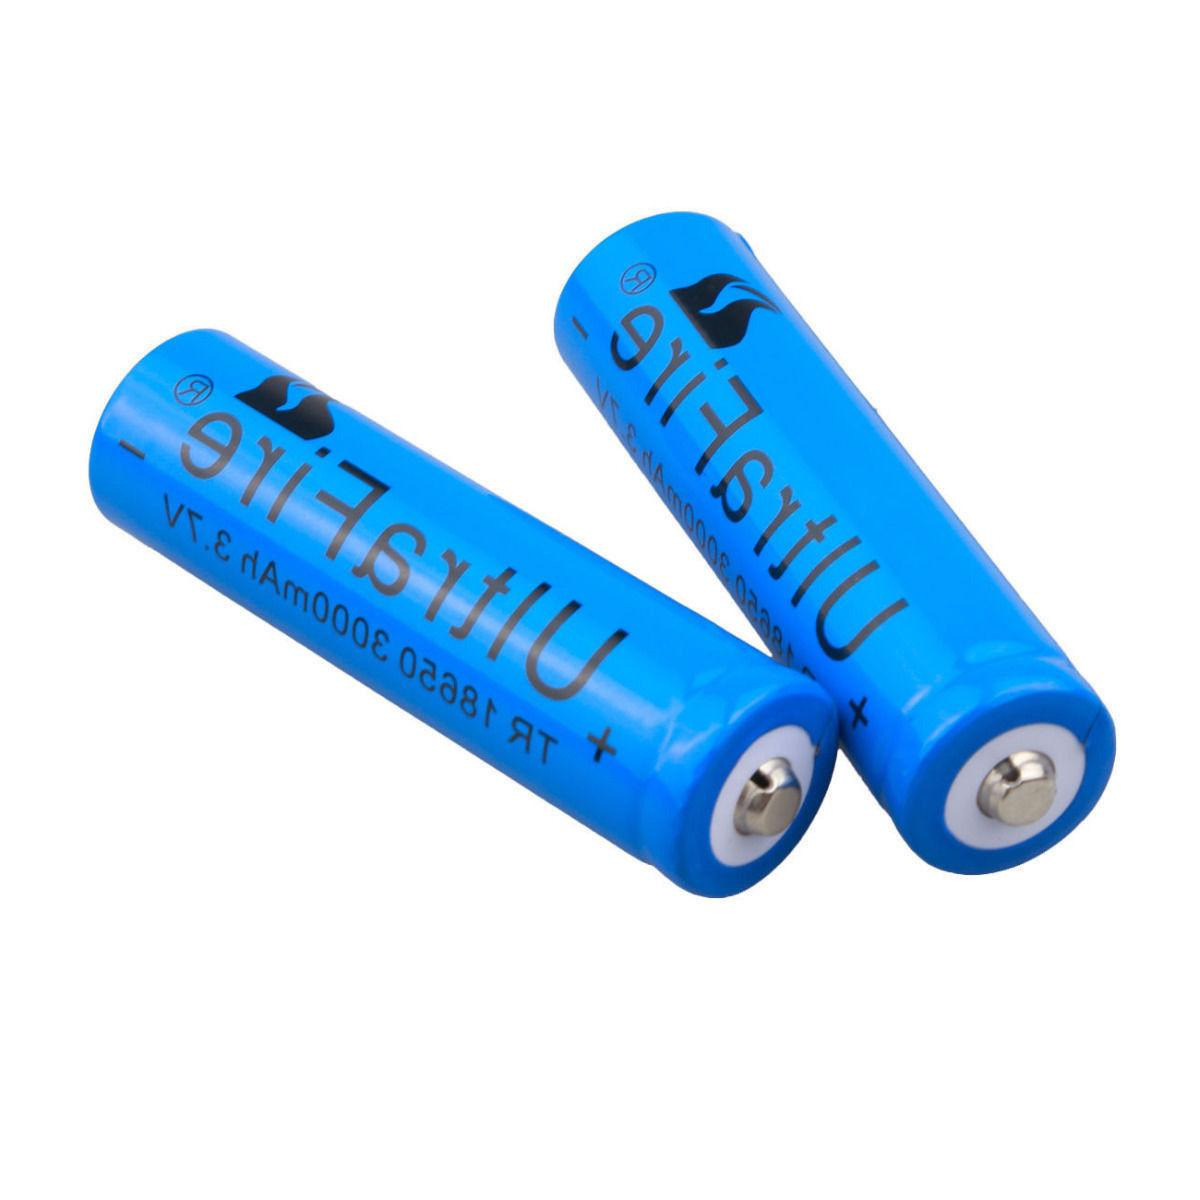 2pc UltraFire Battery Batteries Charger